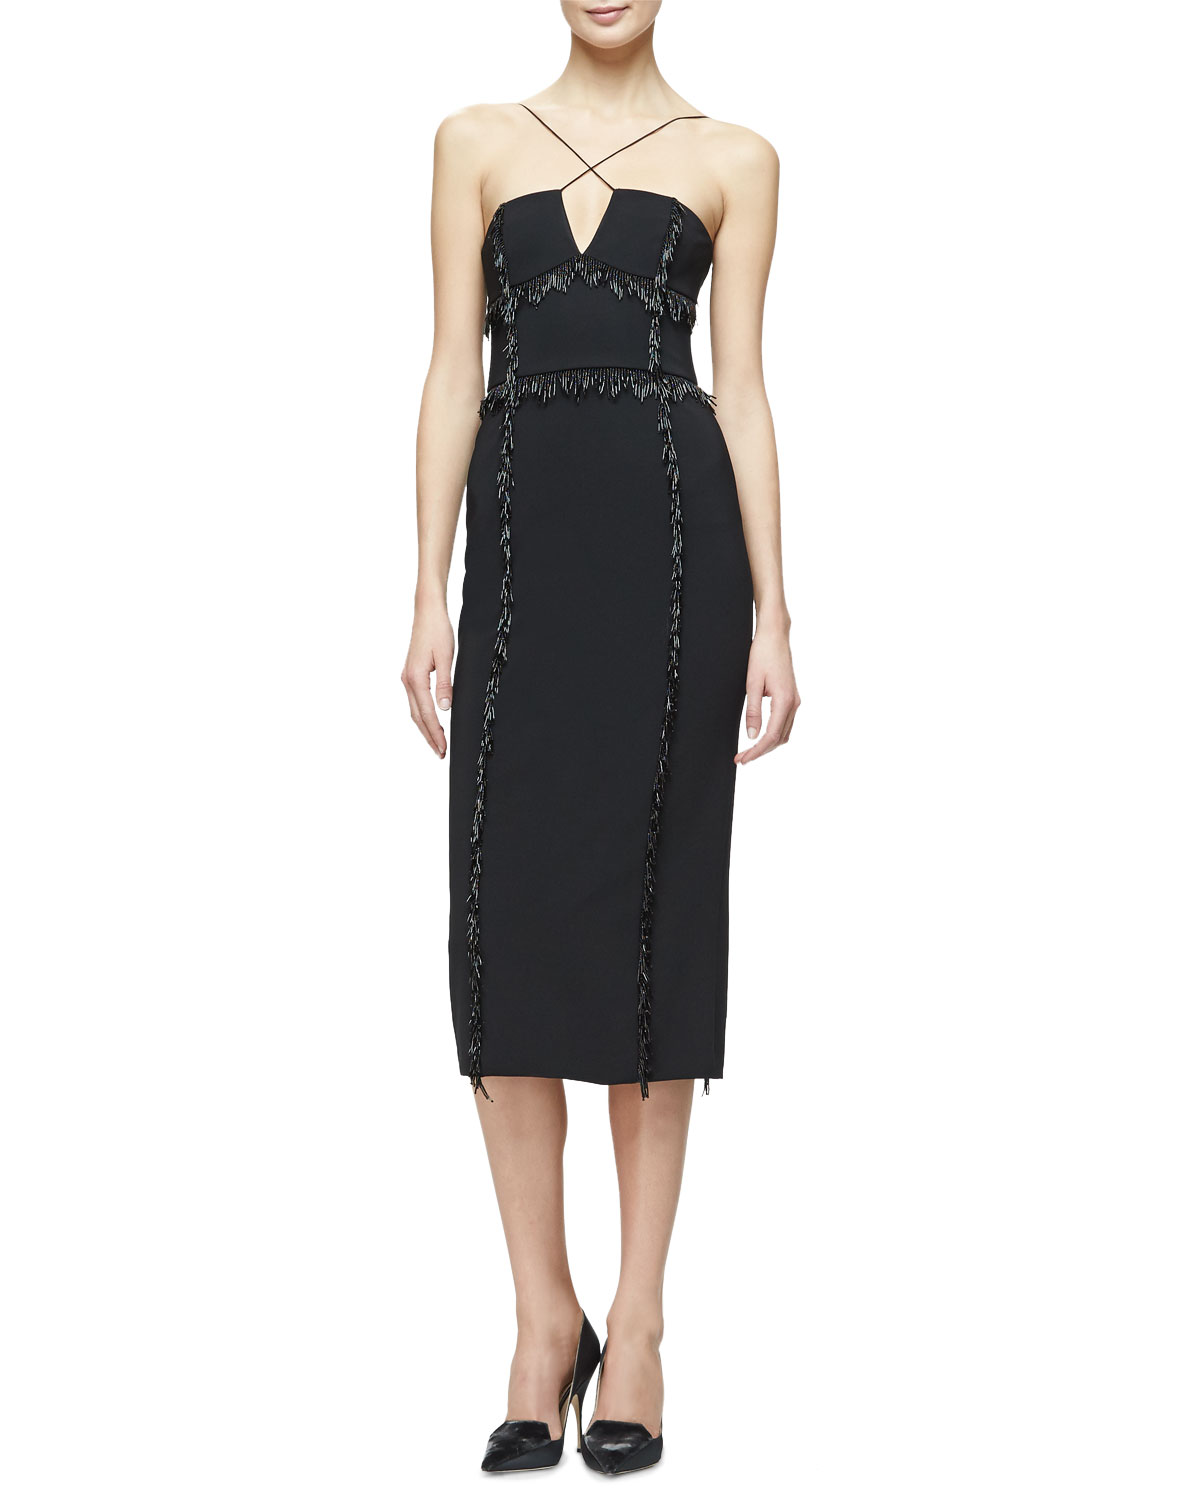 Lena Crisscross-Front Sheath Dress, Black